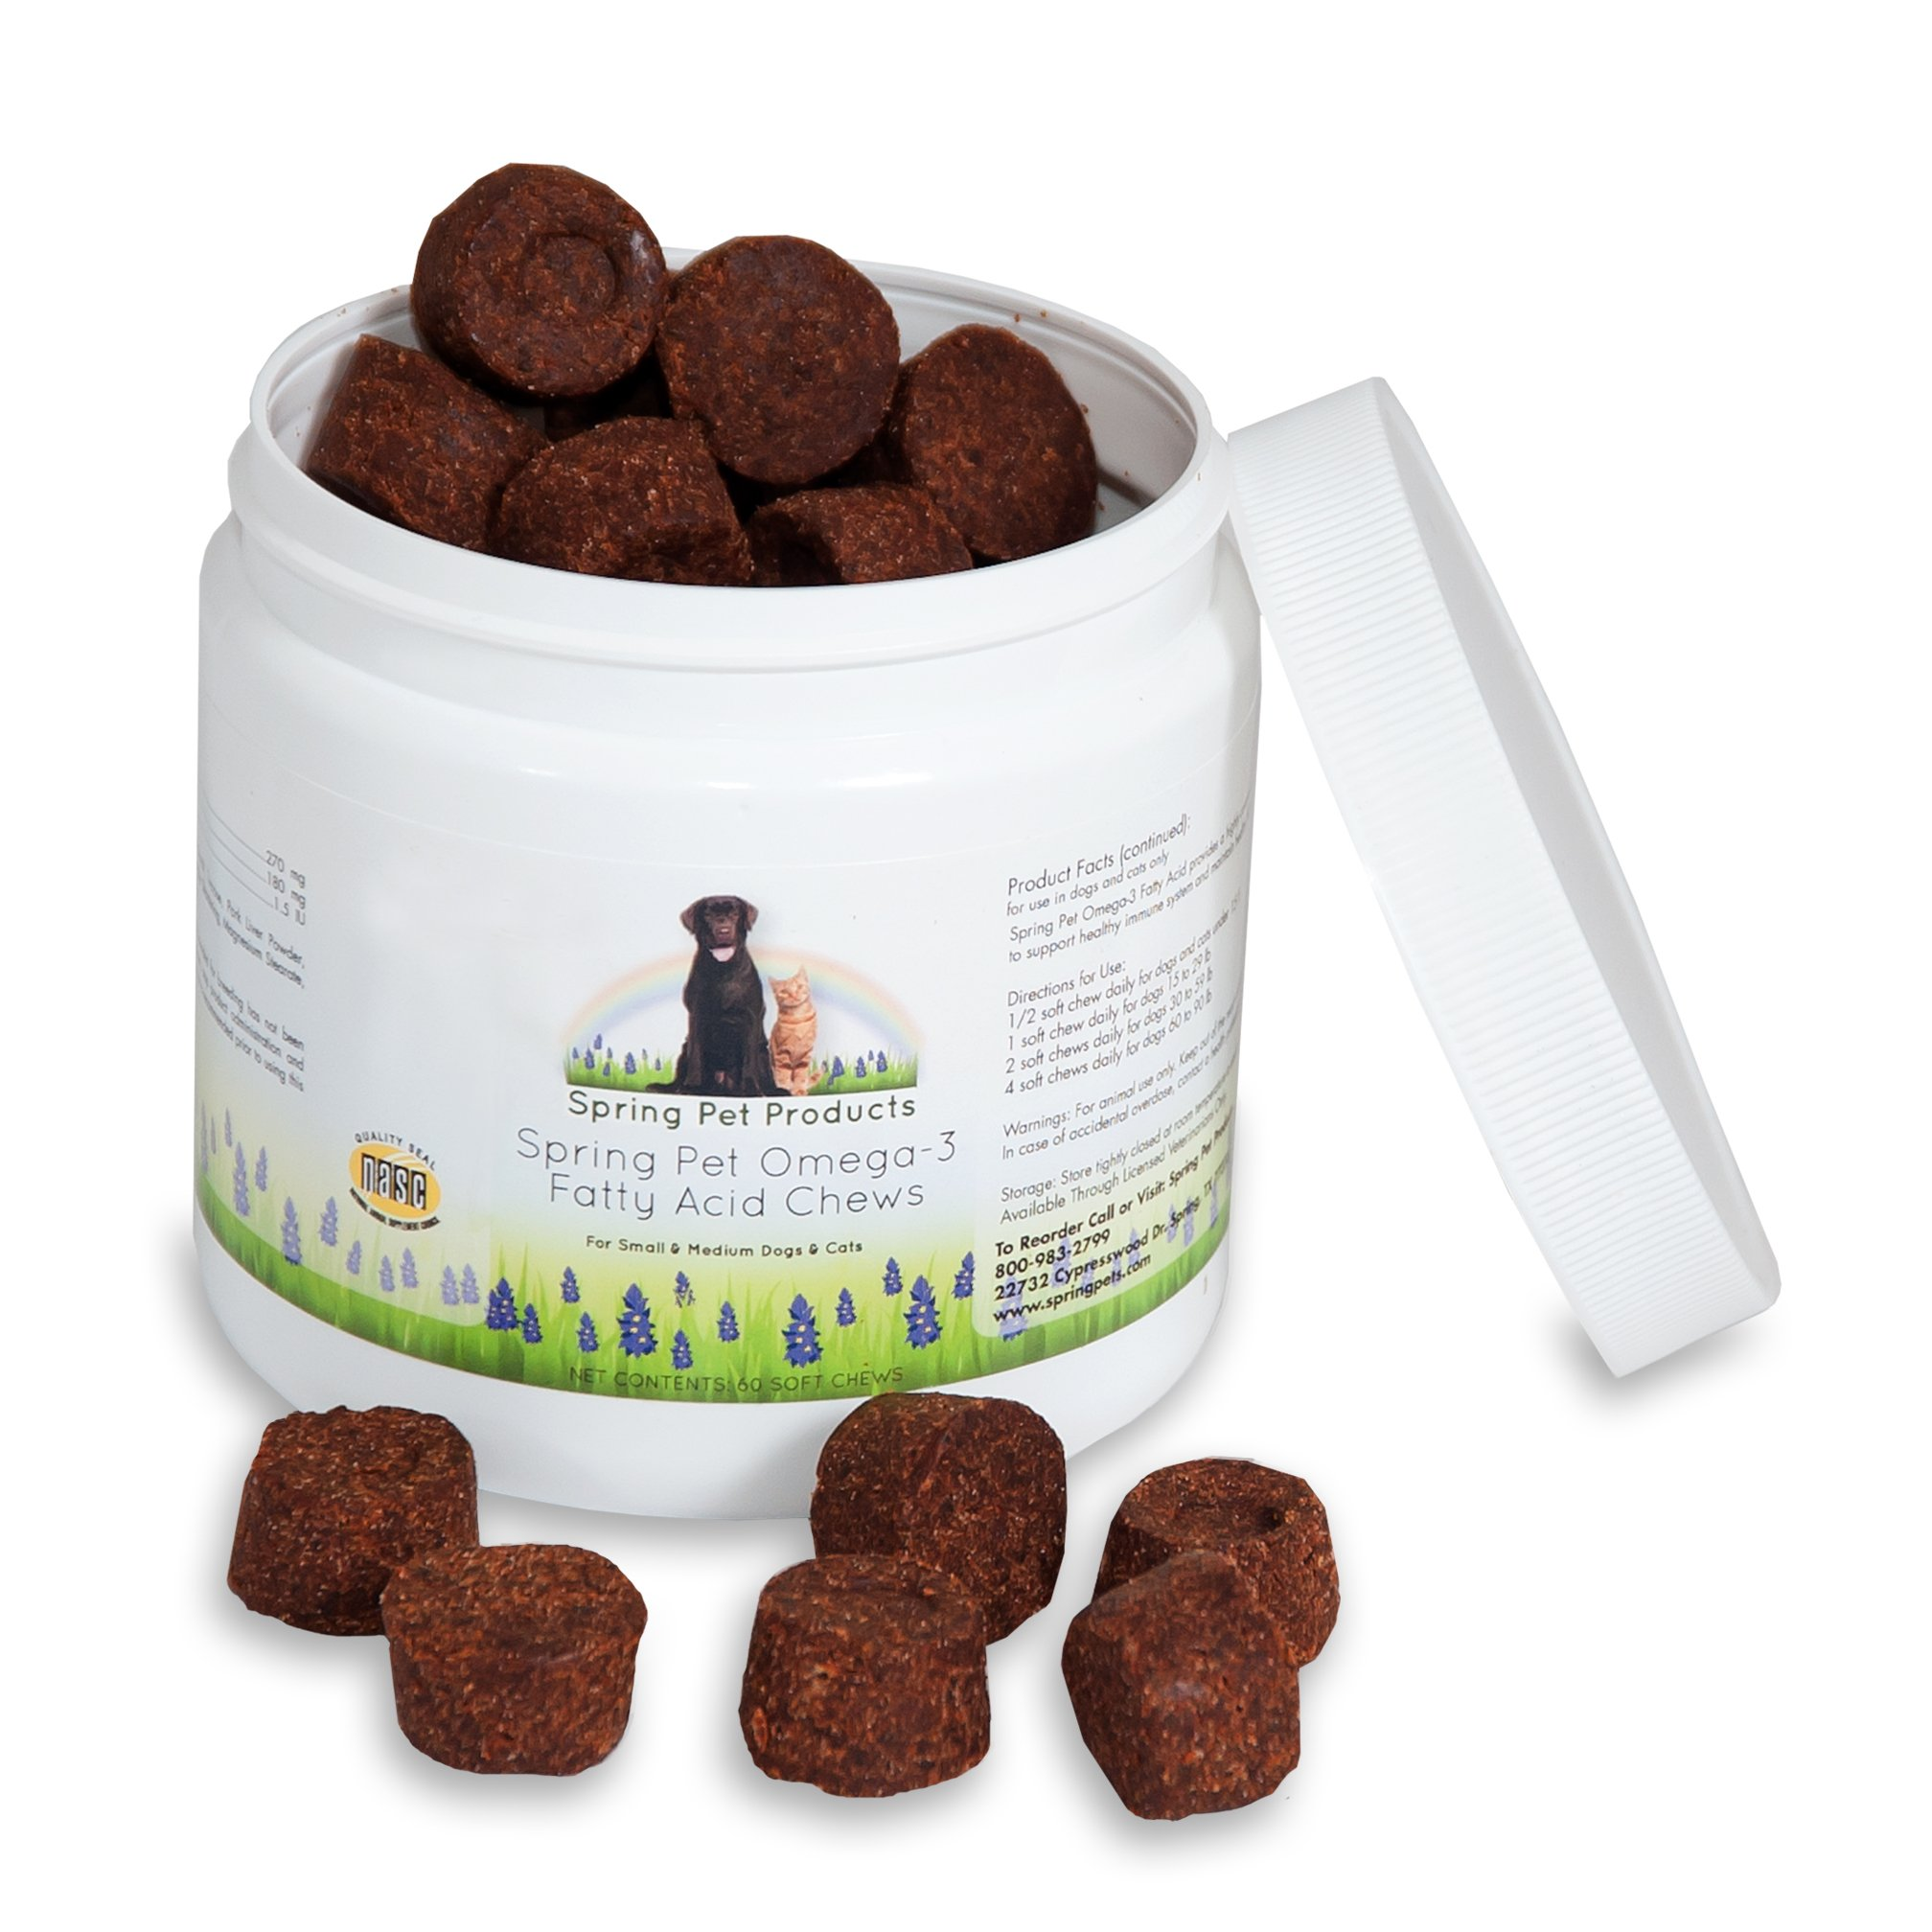 Spring Pet Omega 3 Fatty Acid Chews - Natural Fish Oil Pet Supplememt Treat For Healthy and Shiny Skin and Coat - Support Joints, Bones and Brain Function (60)